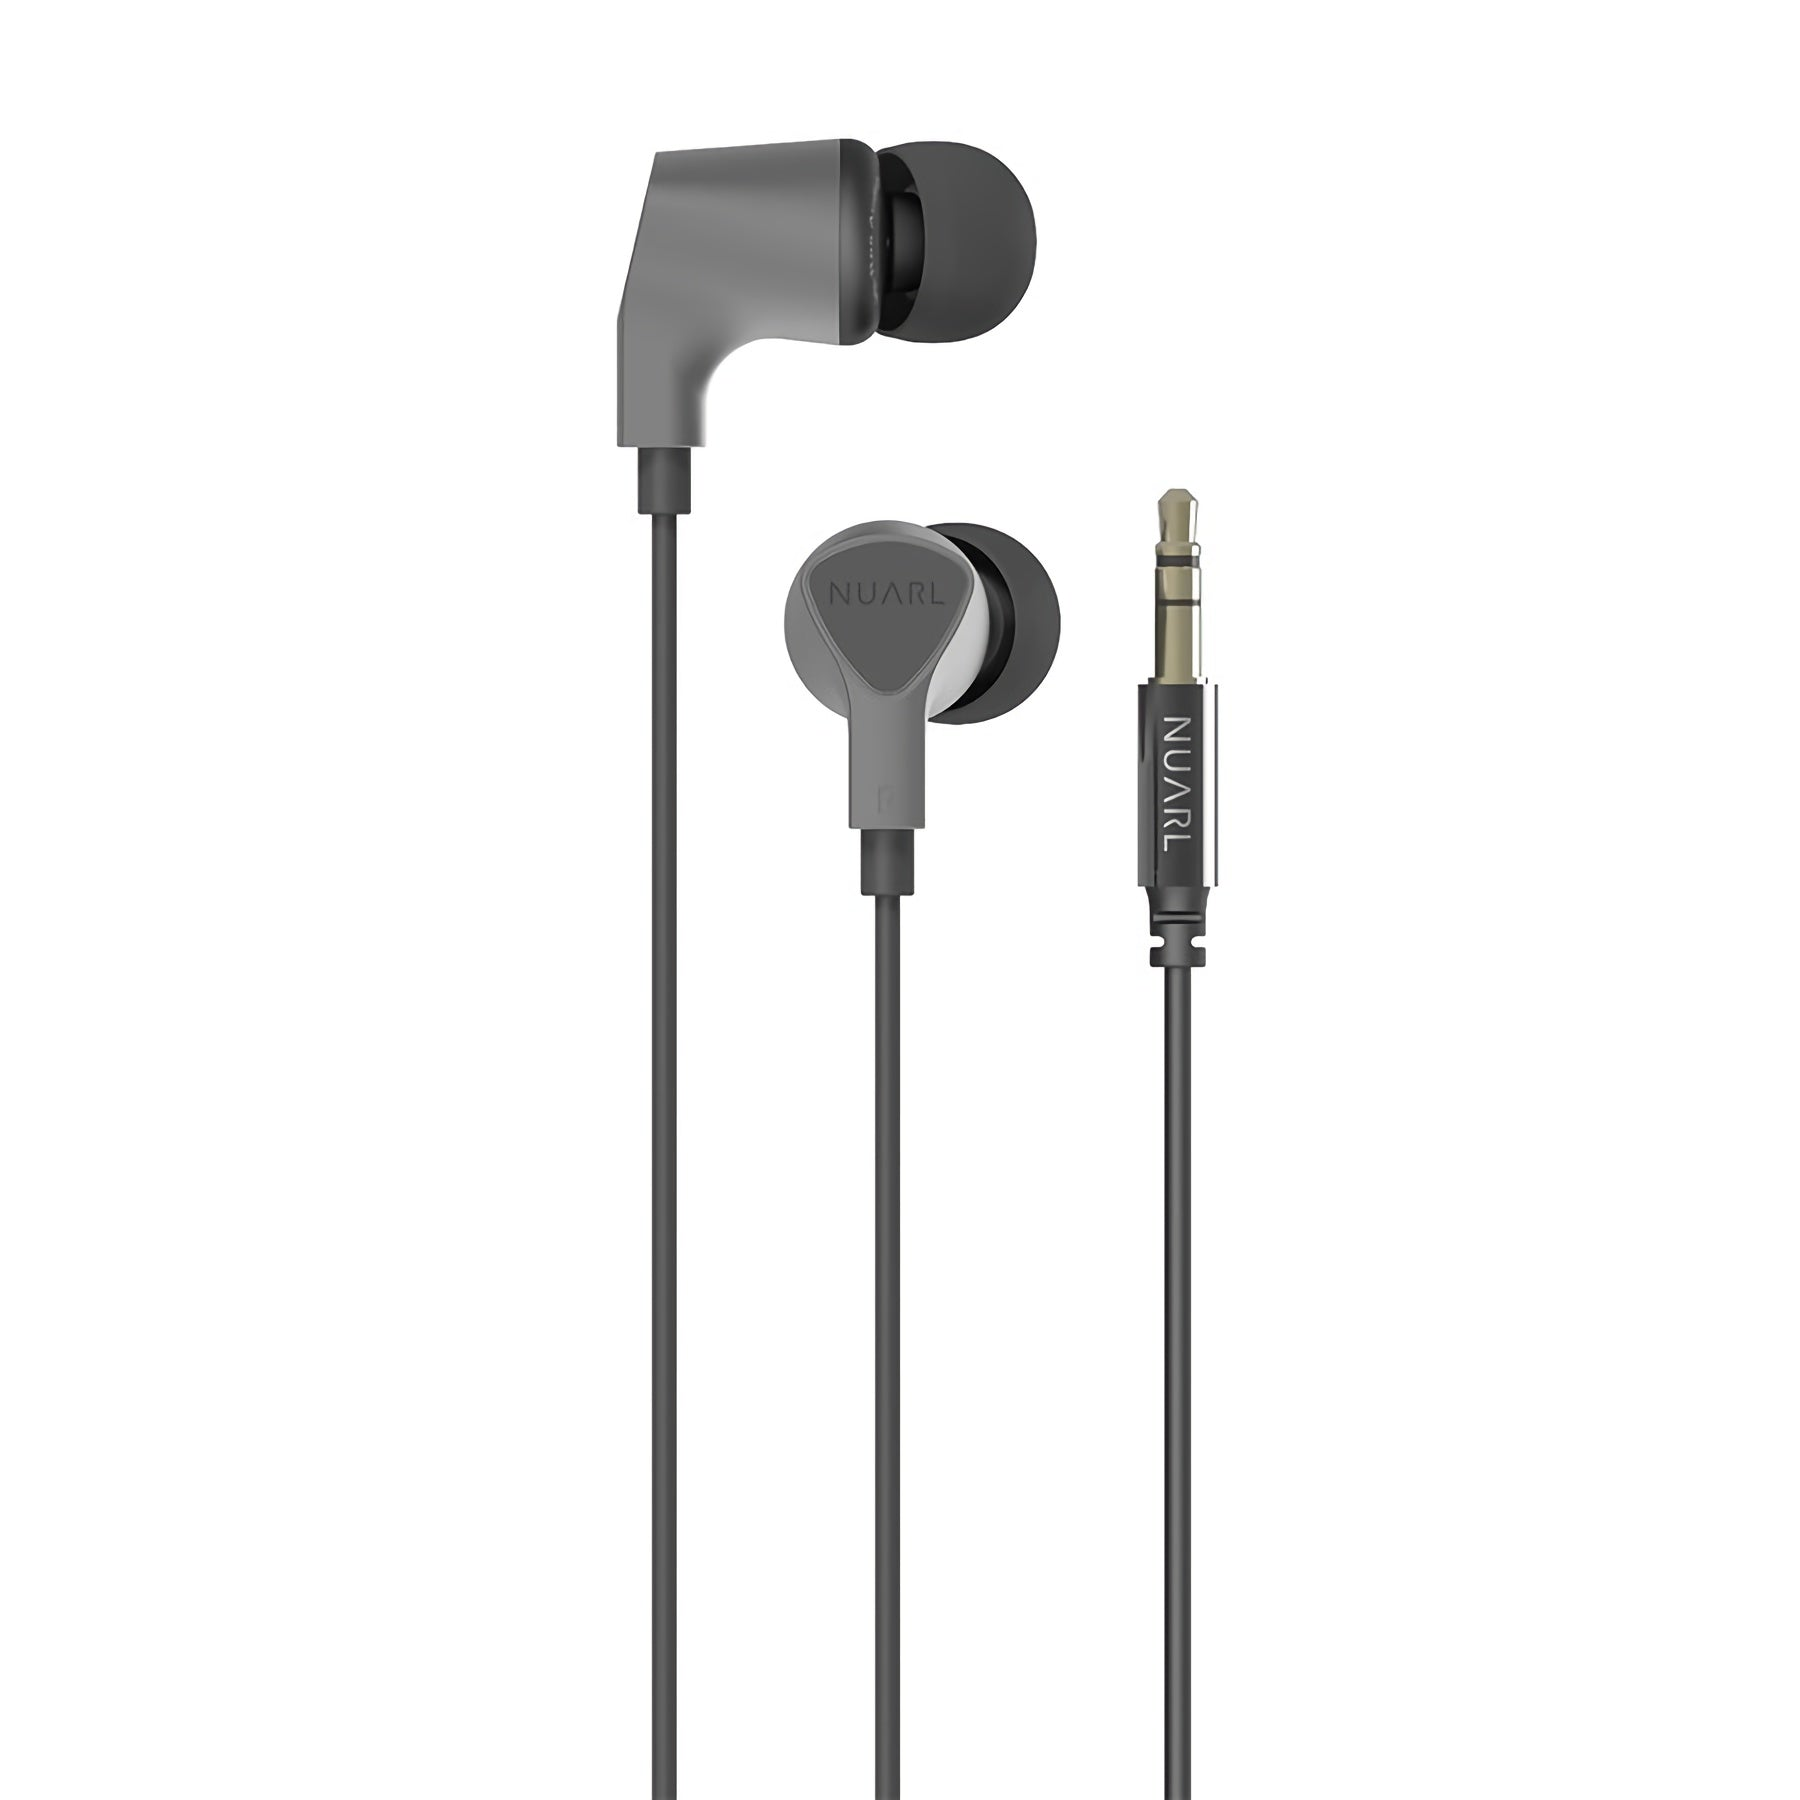 Nuarl NX110A - Jaben - The Little Headphone Store